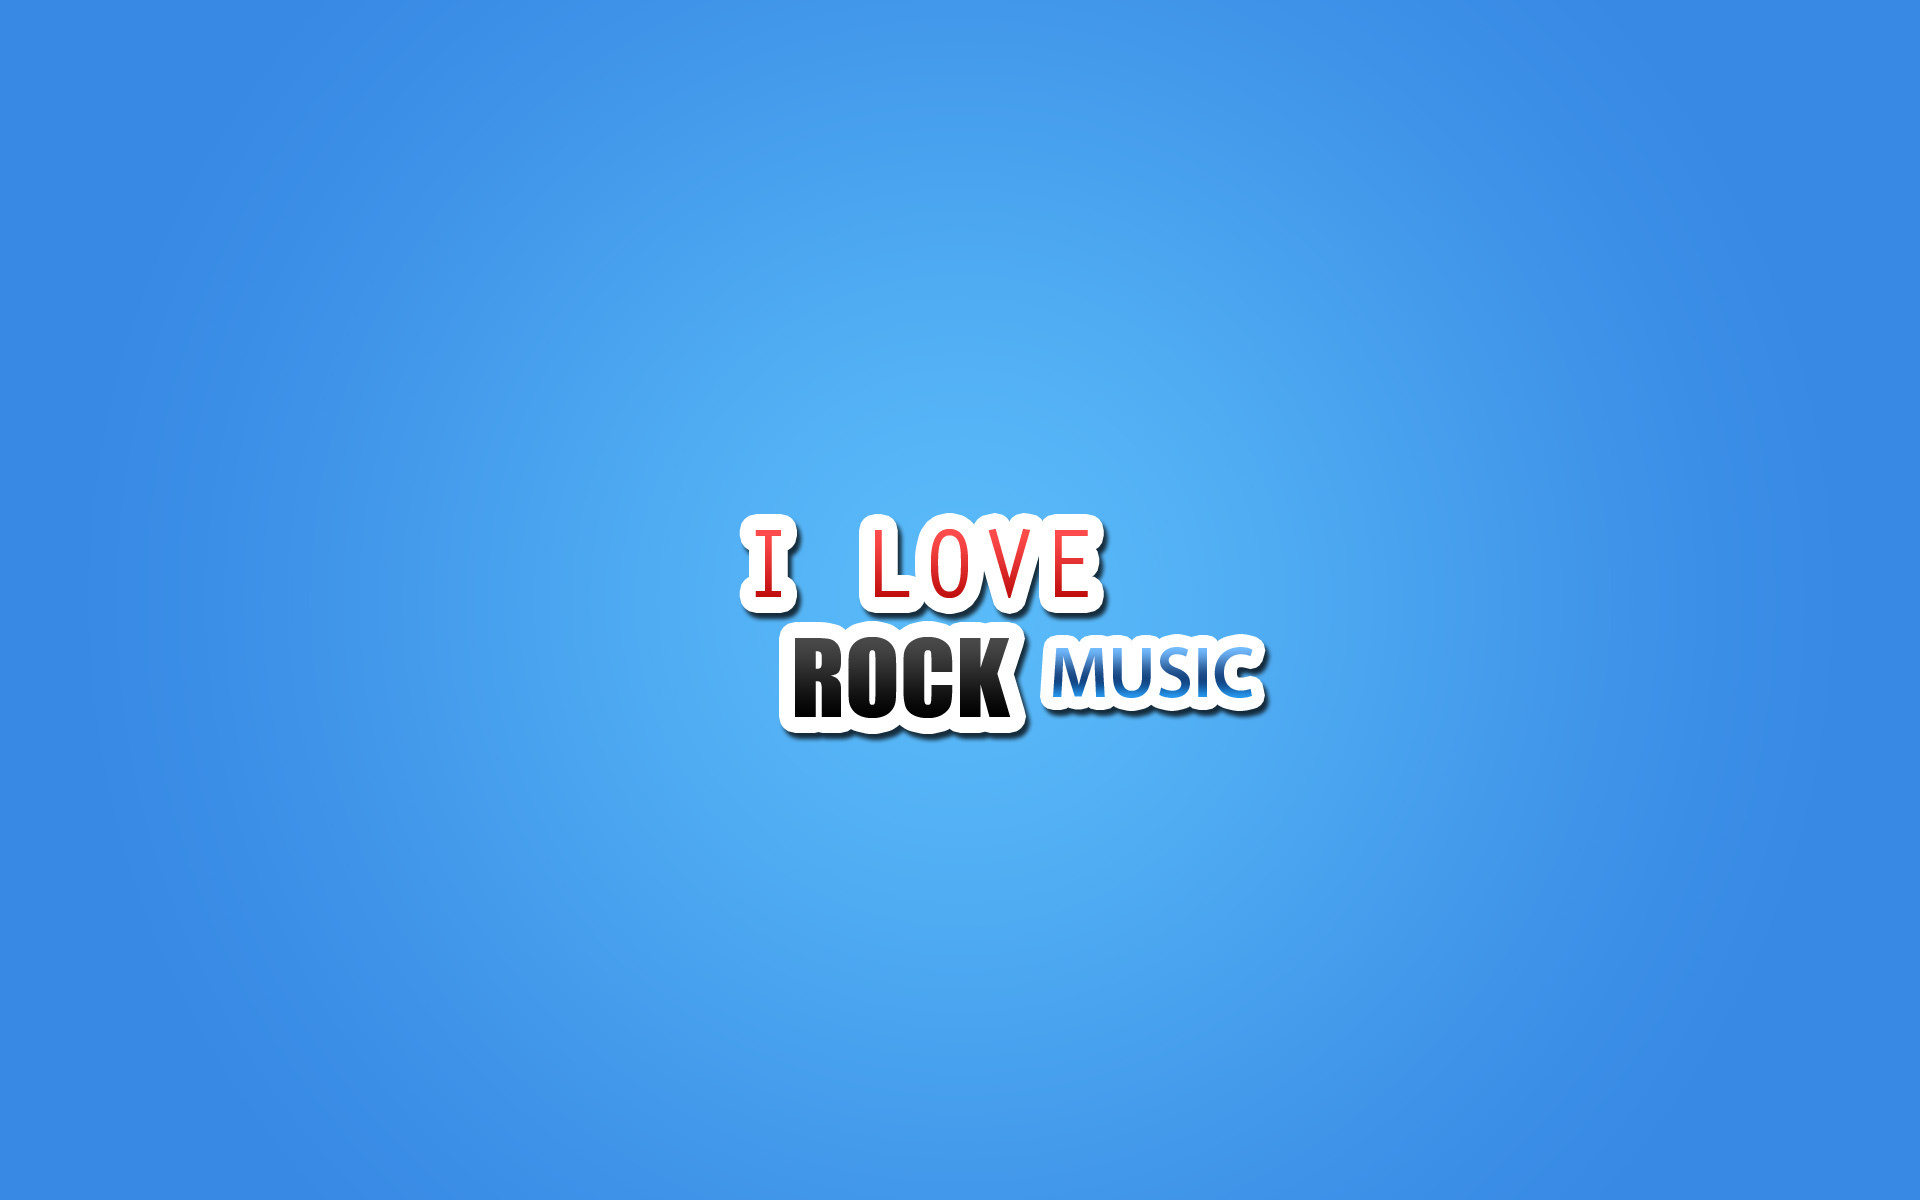 I Love Rock Music Wallpapers - 1920x1200 - 139819